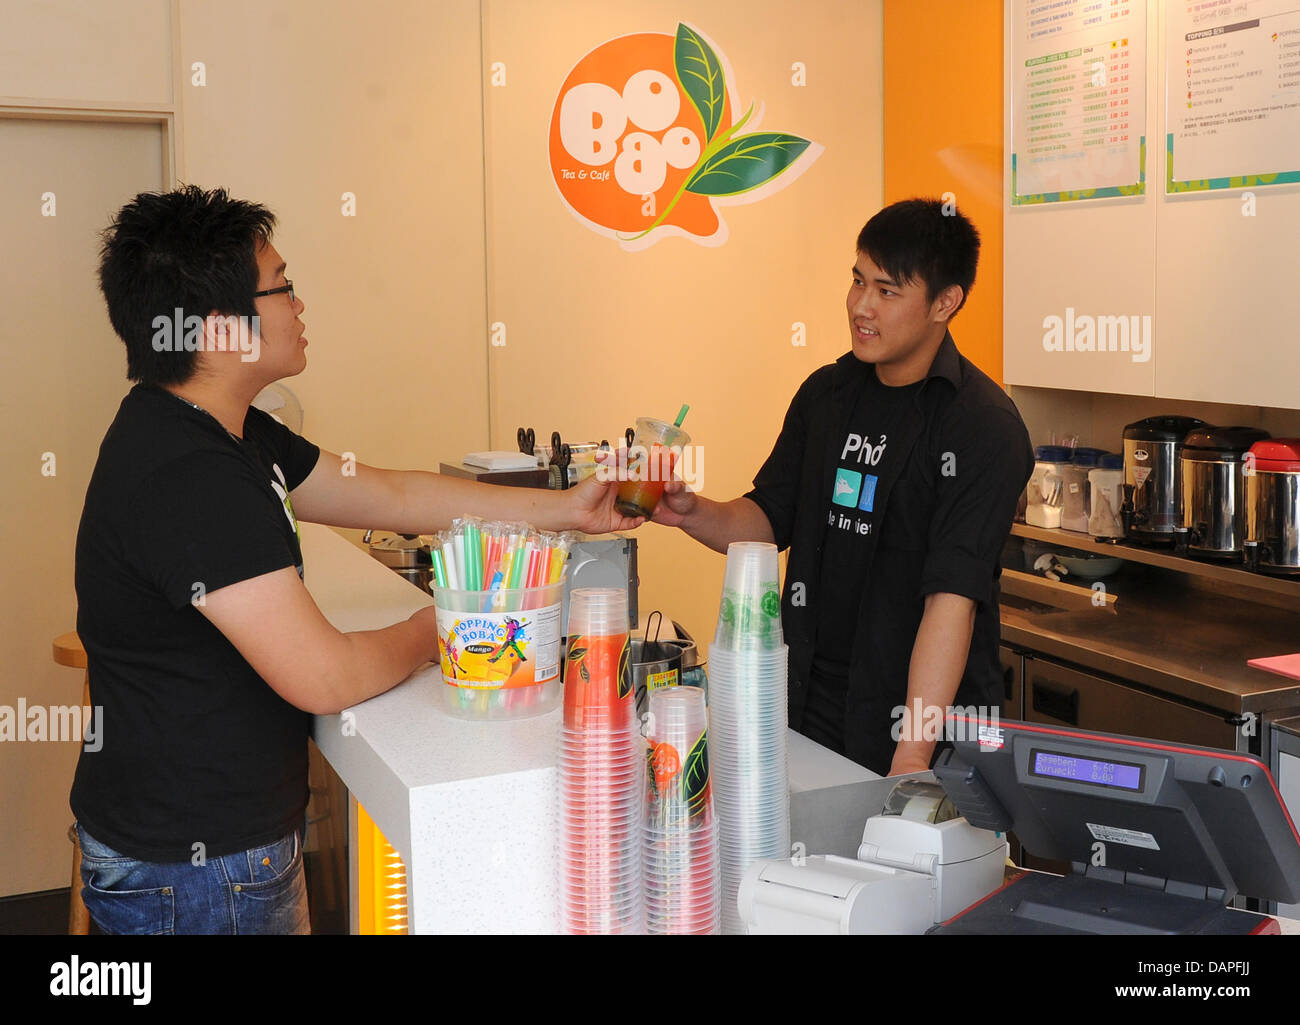 A Young Man Buys The Latest Cult Drink Bubble Tea Or Bubble Milk Tea Stock Photo Alamy